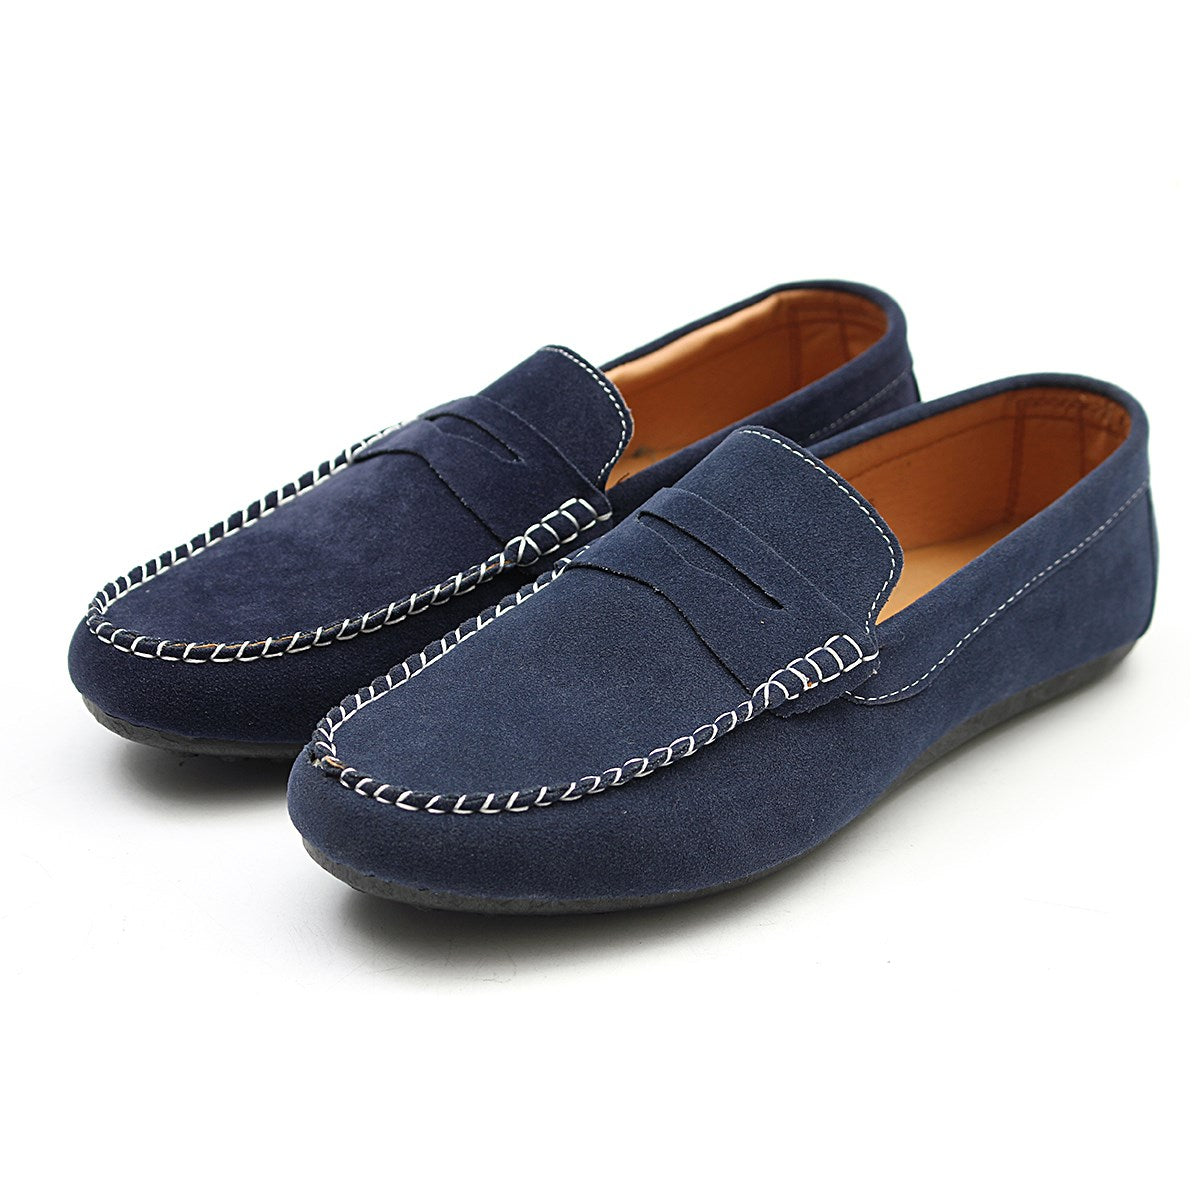 Soft Moccasins Men Loafers High Quality Suede Leather Shoes Men Flats Gommino Driving Shoes Summer Style Spring